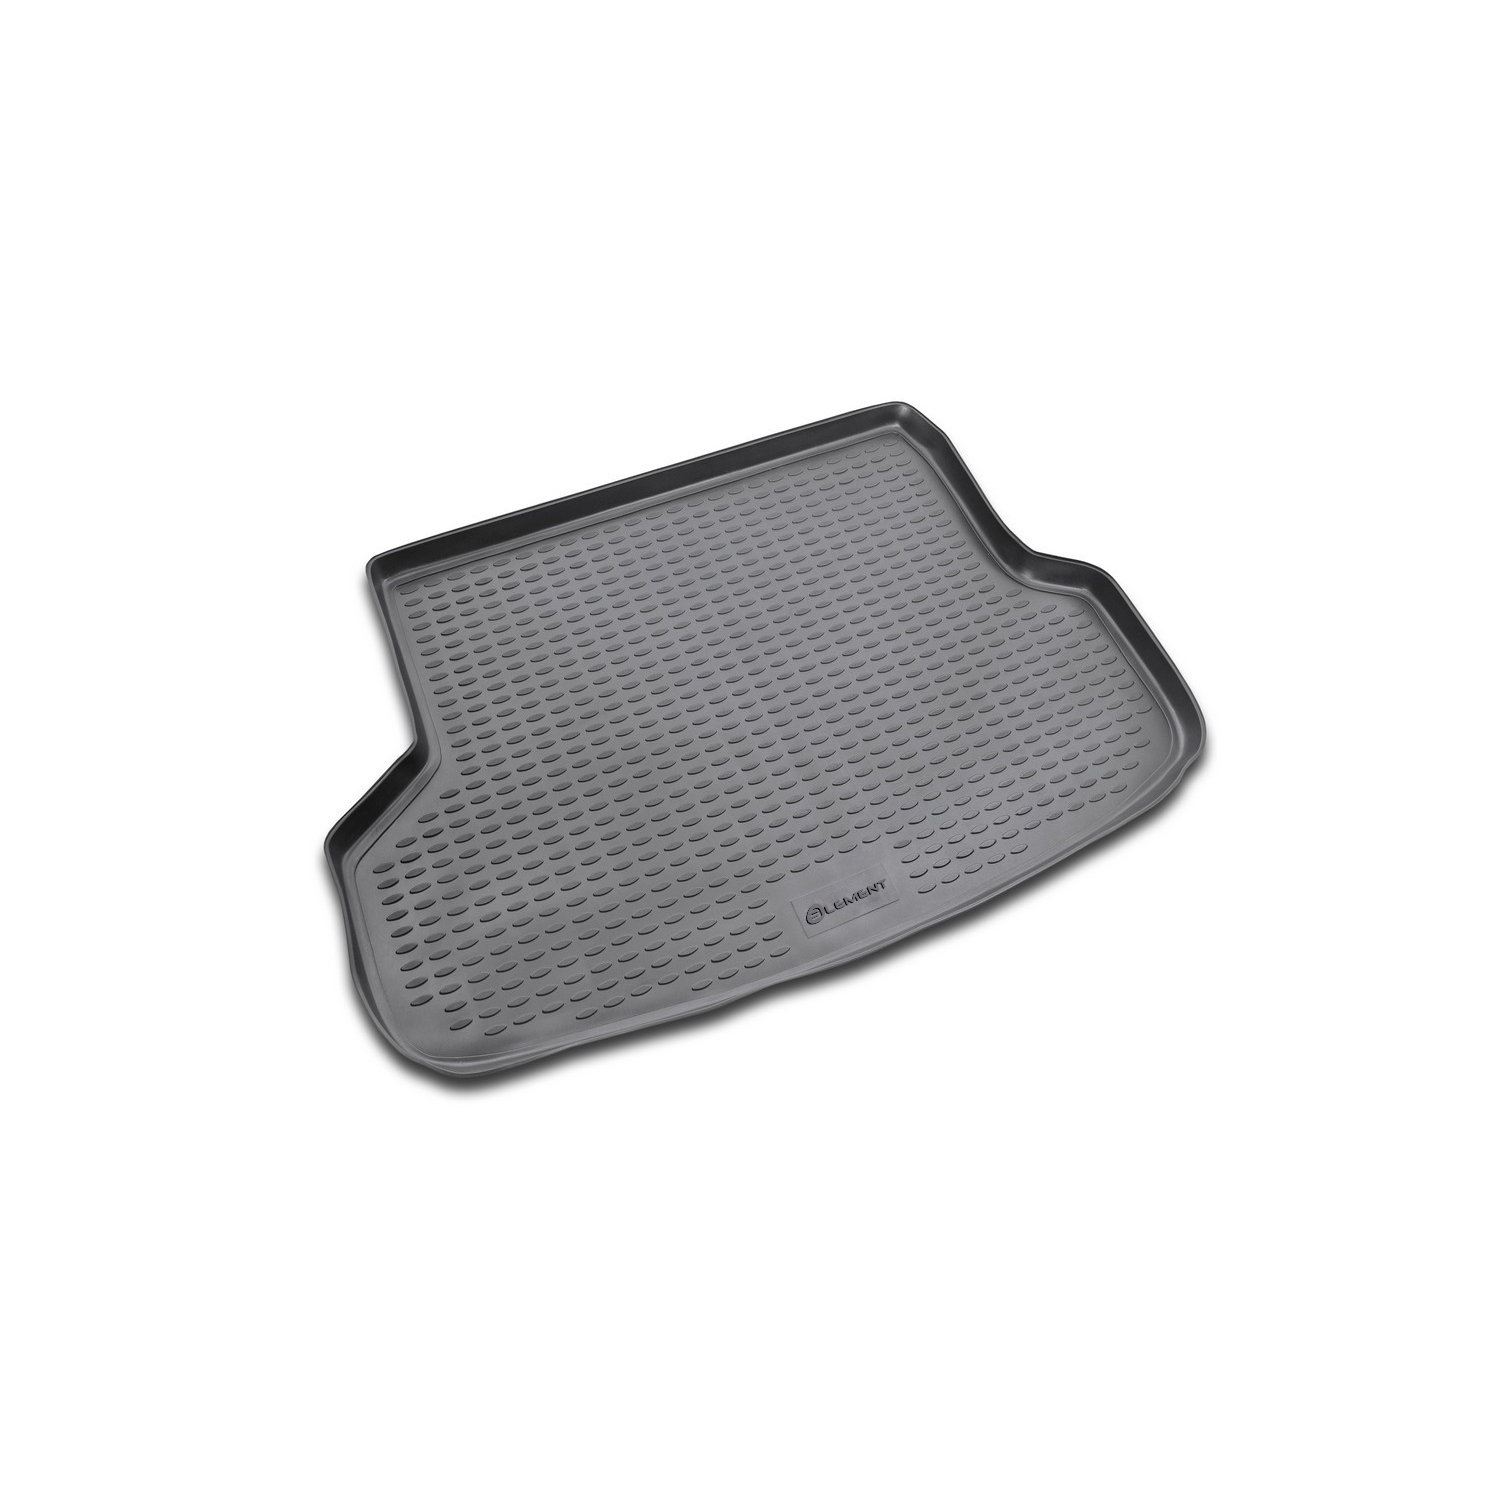 Trunk Mat For MITSUBISHI Lancer 2003-2007, The UN. NLC.35.03.B12